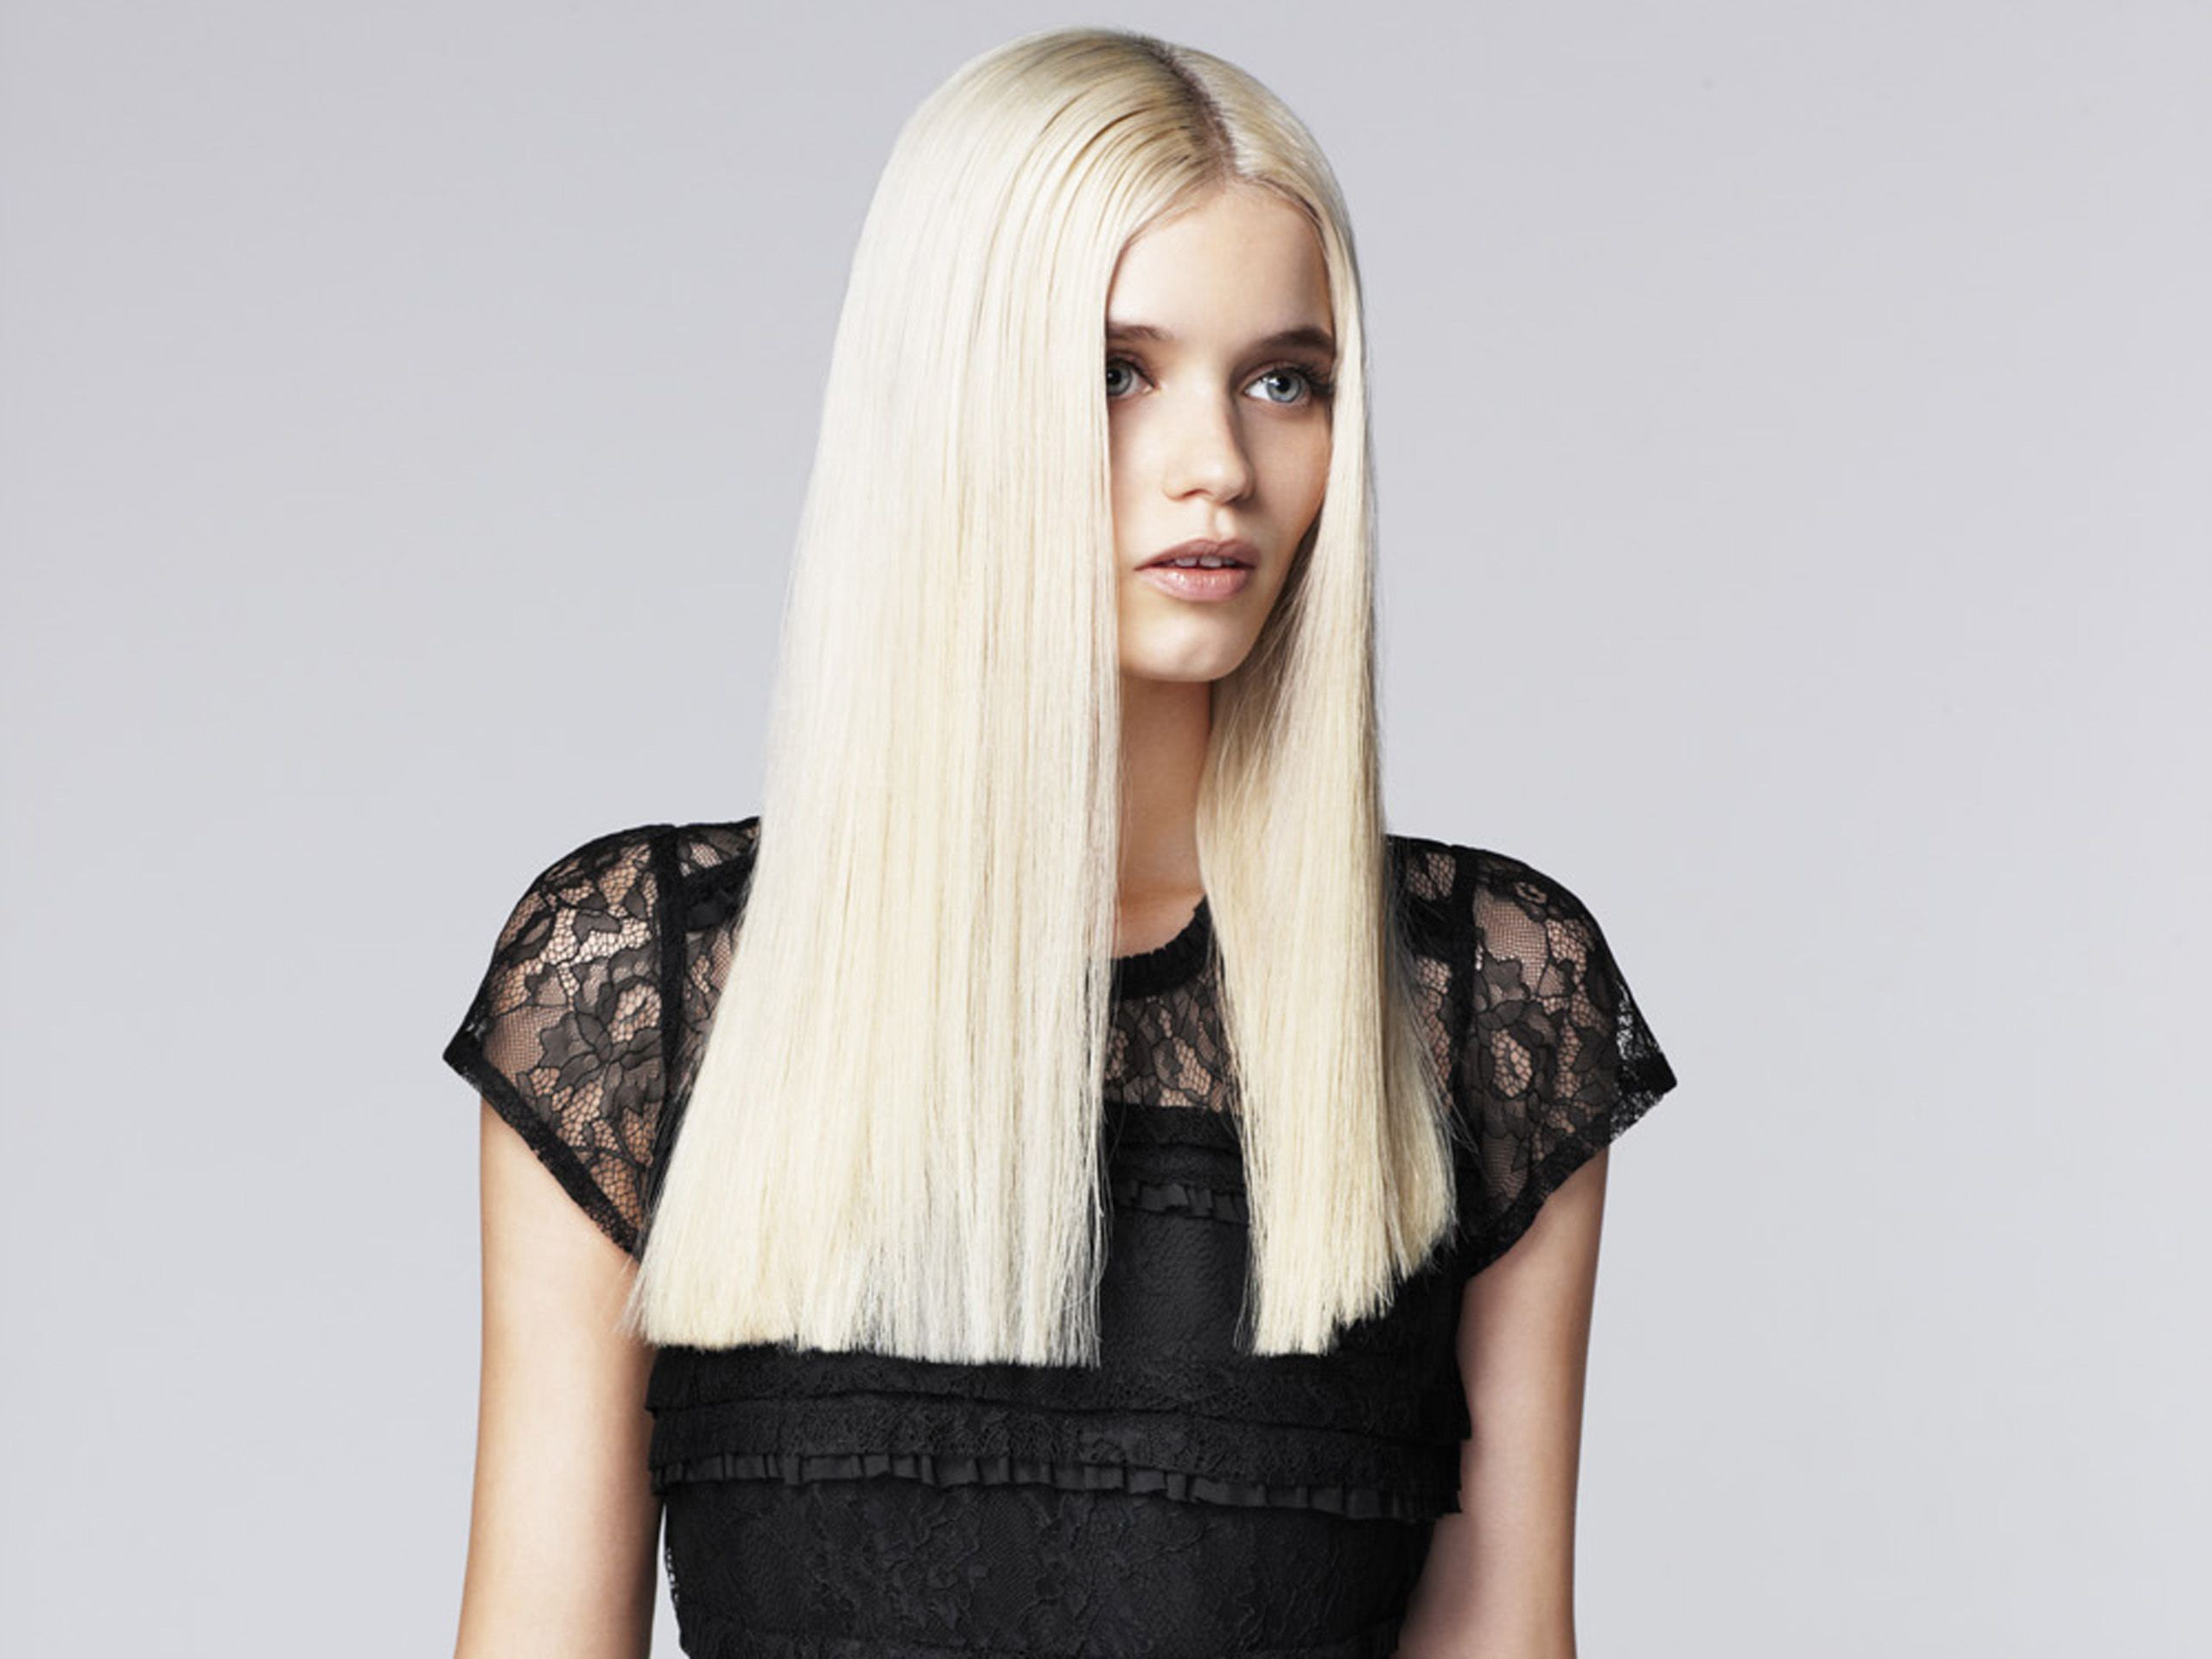 photos-de-stars-abbey-lee-kershaw-mode-fashion-campaign-folkr-6